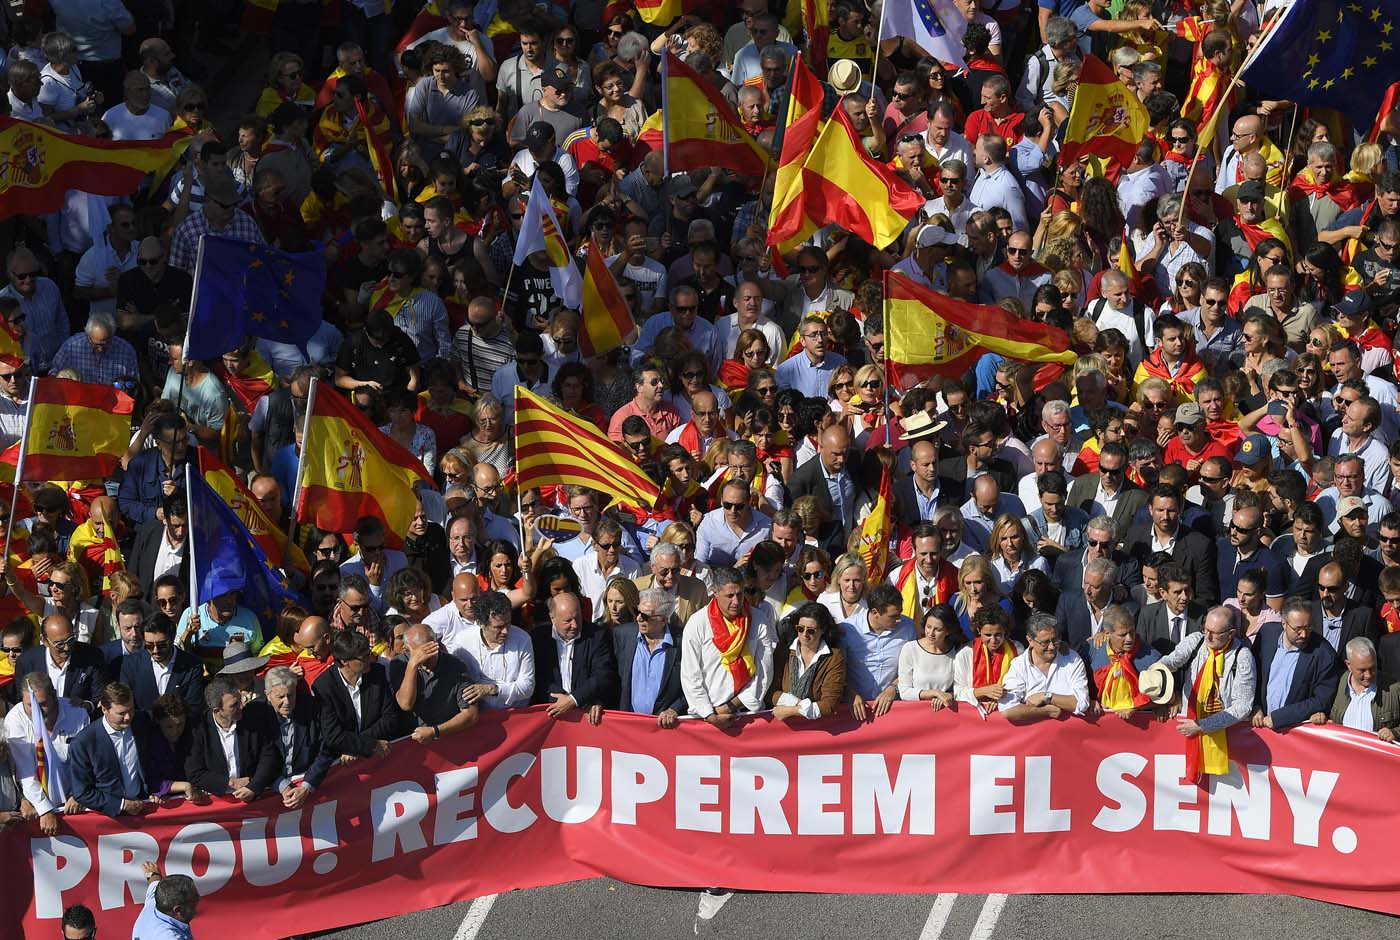 """Leader of the Popular Party of Catalonia (PPC) Xavier Garcia Albiol and Peruvian writer Mario Vargas Llosa (first row,center) walk behind a banner reading in Catalan """"Enough, regain lucidity"""" during a demonstration called by """"Societat Civil Catalans"""" (Catalan Civil Society) to support the unity of Spain on October 8, 2017 in Barcelona. Spain braced for more protests despite tentative signs that the sides may be seeking to defuse the crisis after Madrid offered a first apology to Catalans injured by police during their outlawed independence vote. / AFP PHOTO / LLUIS GENE"""